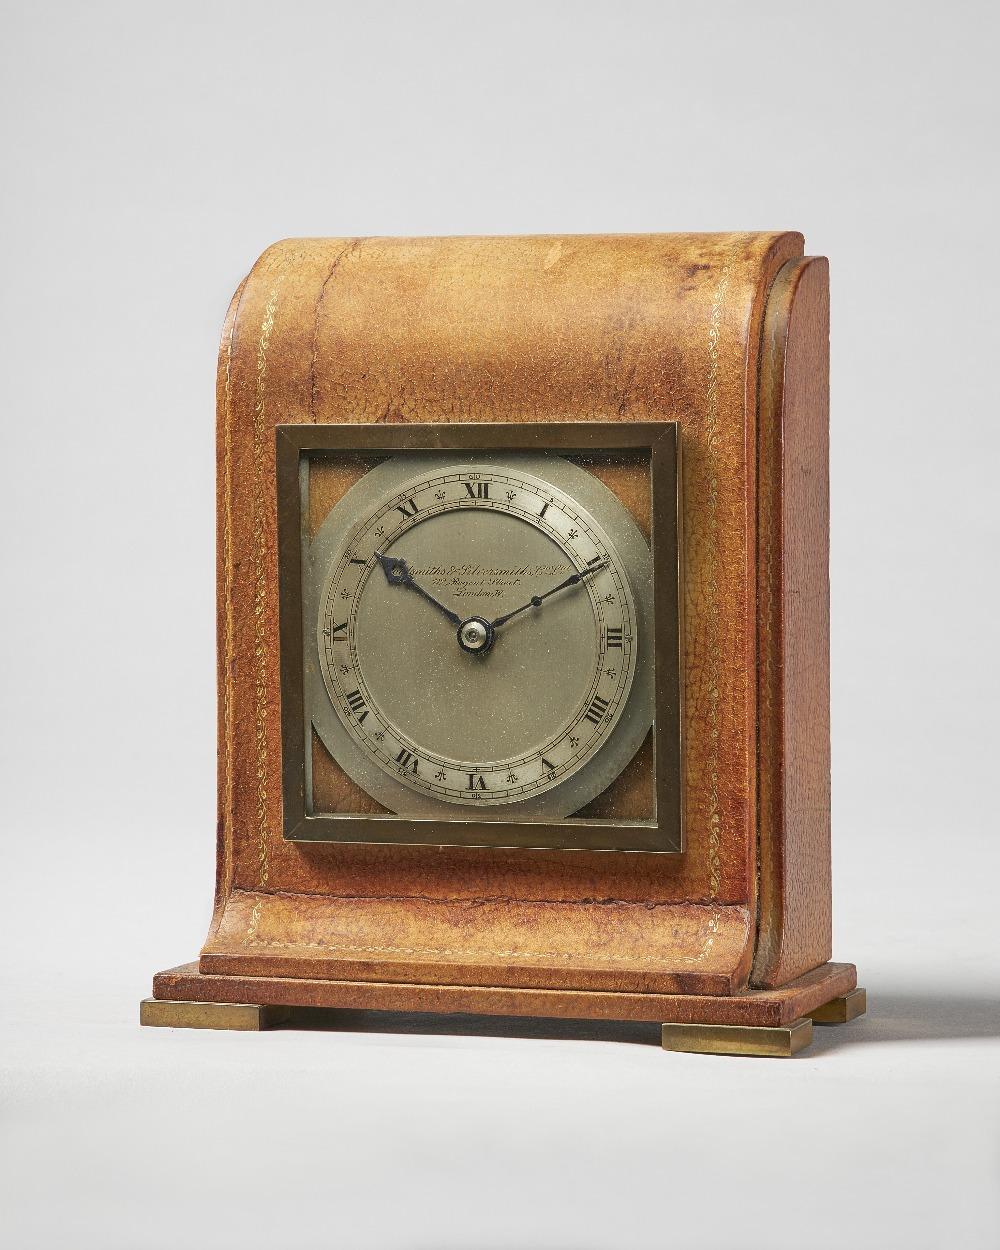 Lot 687 - An Edwardian leather desk timepiece Retailed by the Goldsmiths & Silversmiths, London,